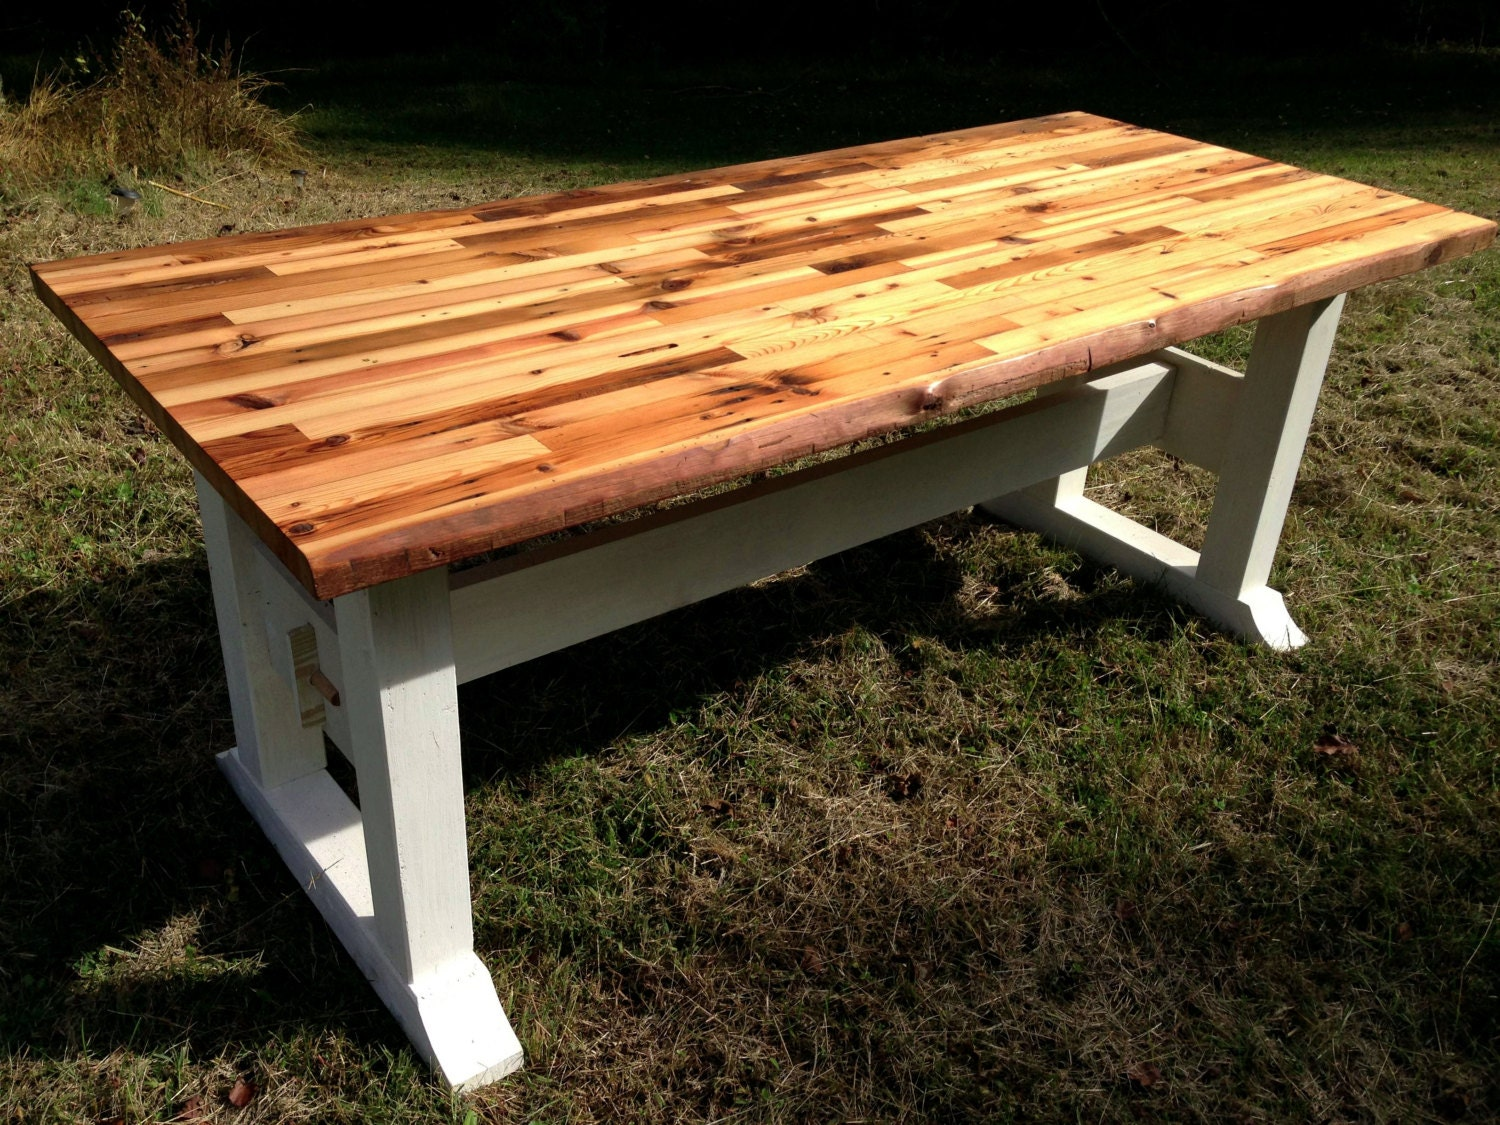 Butcher Block Table Top And Trestle Frame